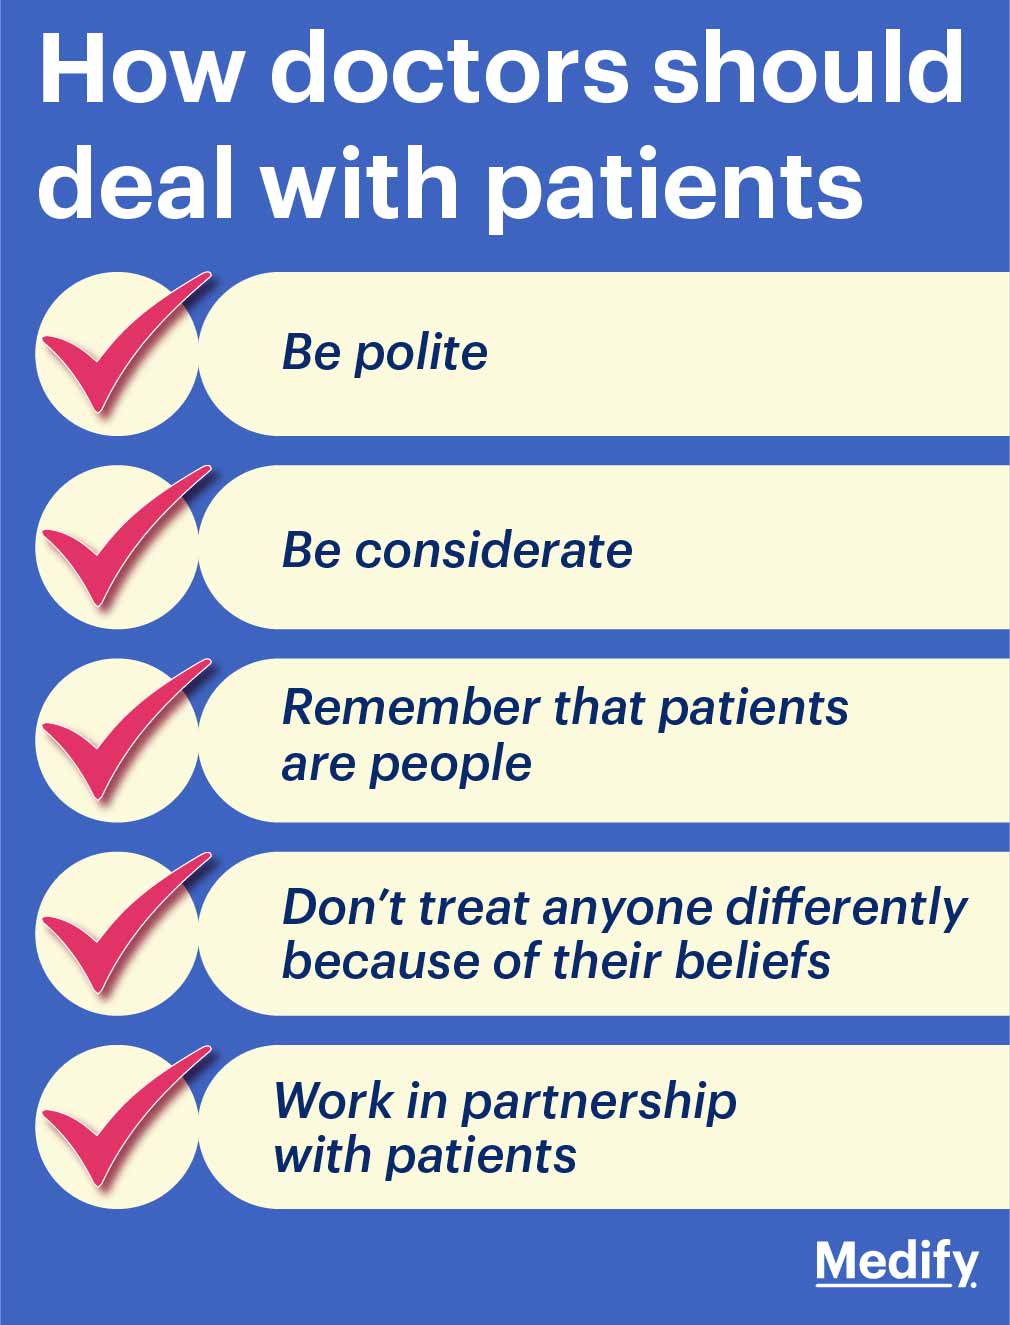 How doctors should deal with patients. Infographic.